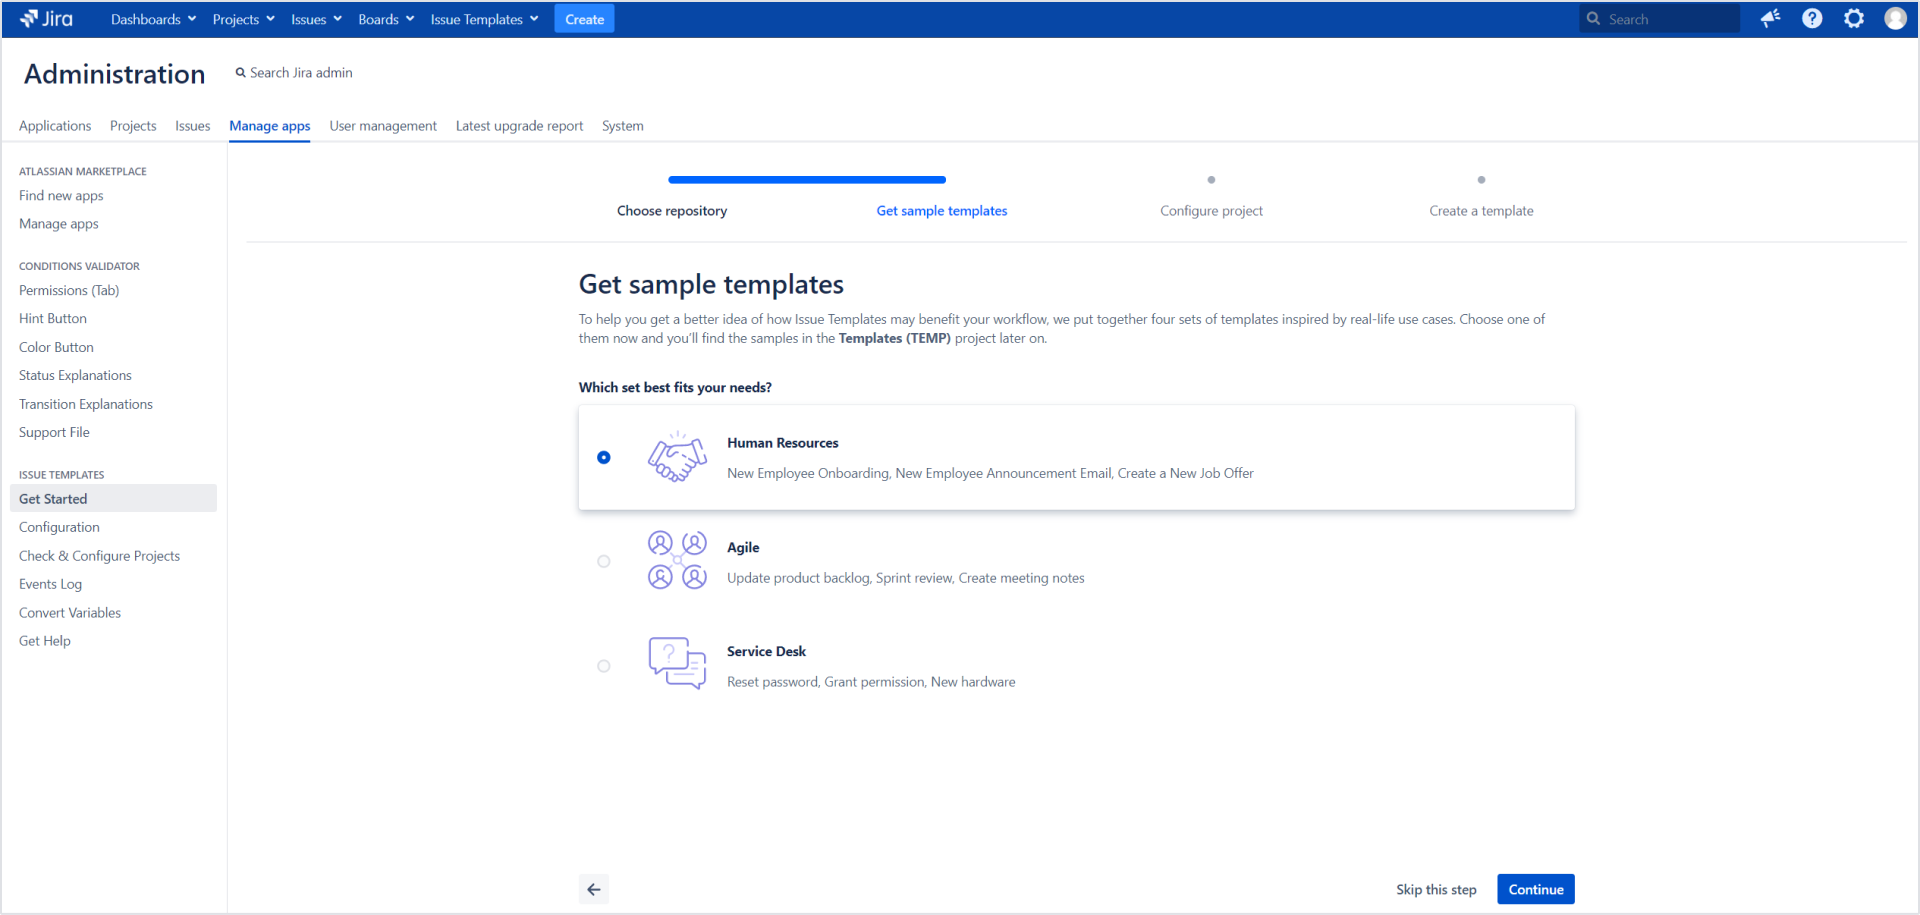 Issue Templates for Jira - Get sample templates